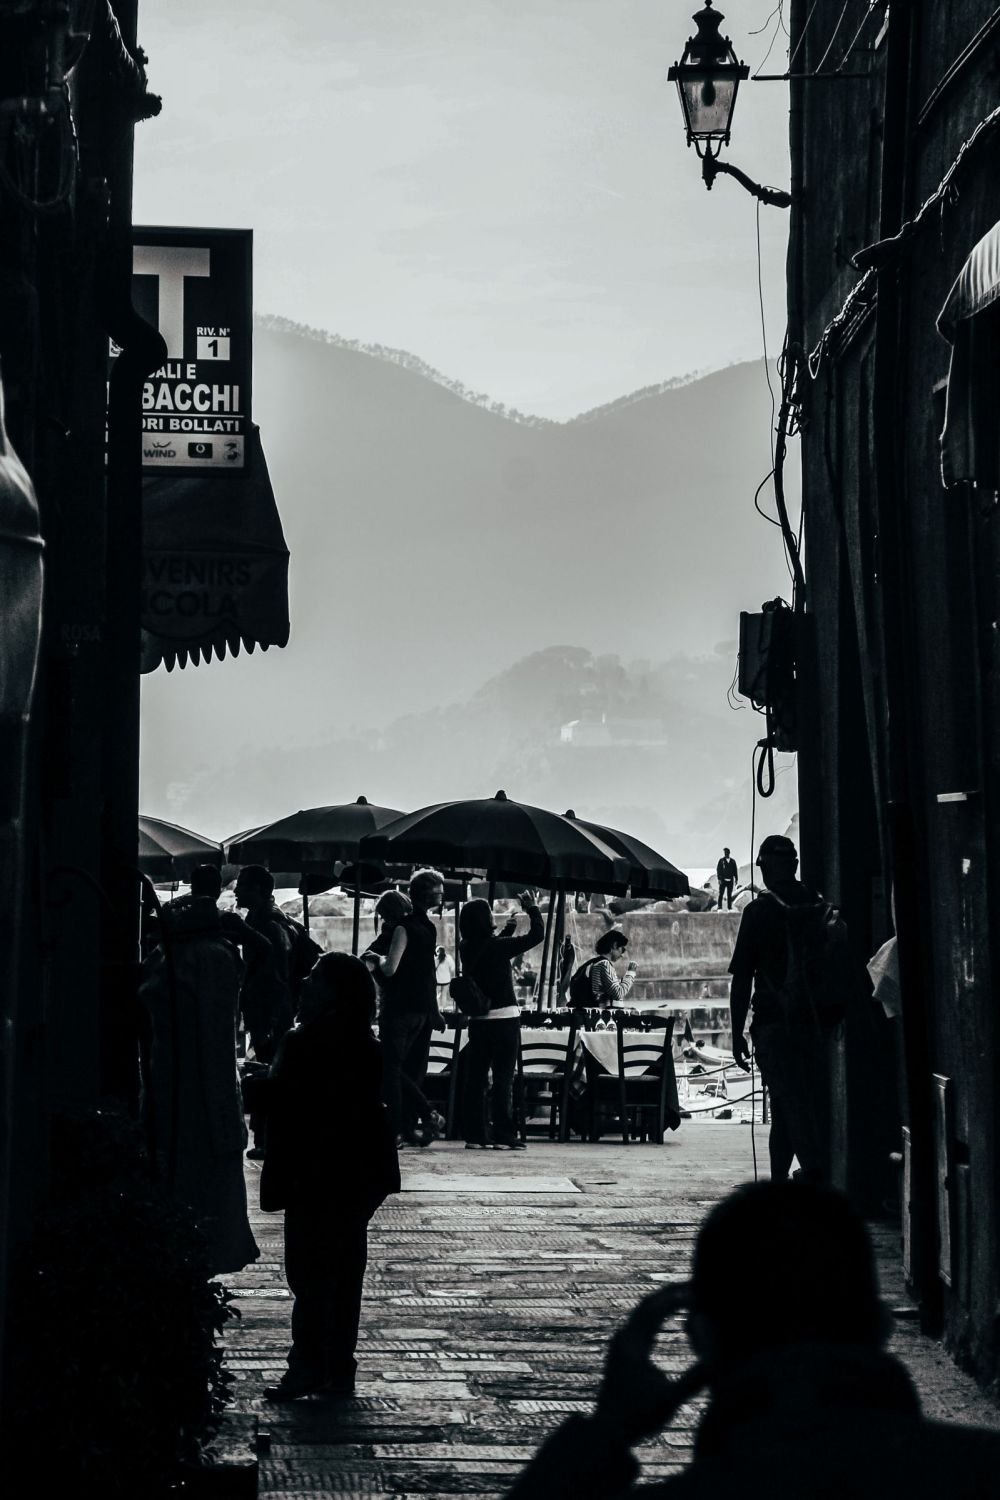 Vernazza in Cinque Terre, Italy - The Photo Diary! [4 of 5] (14)